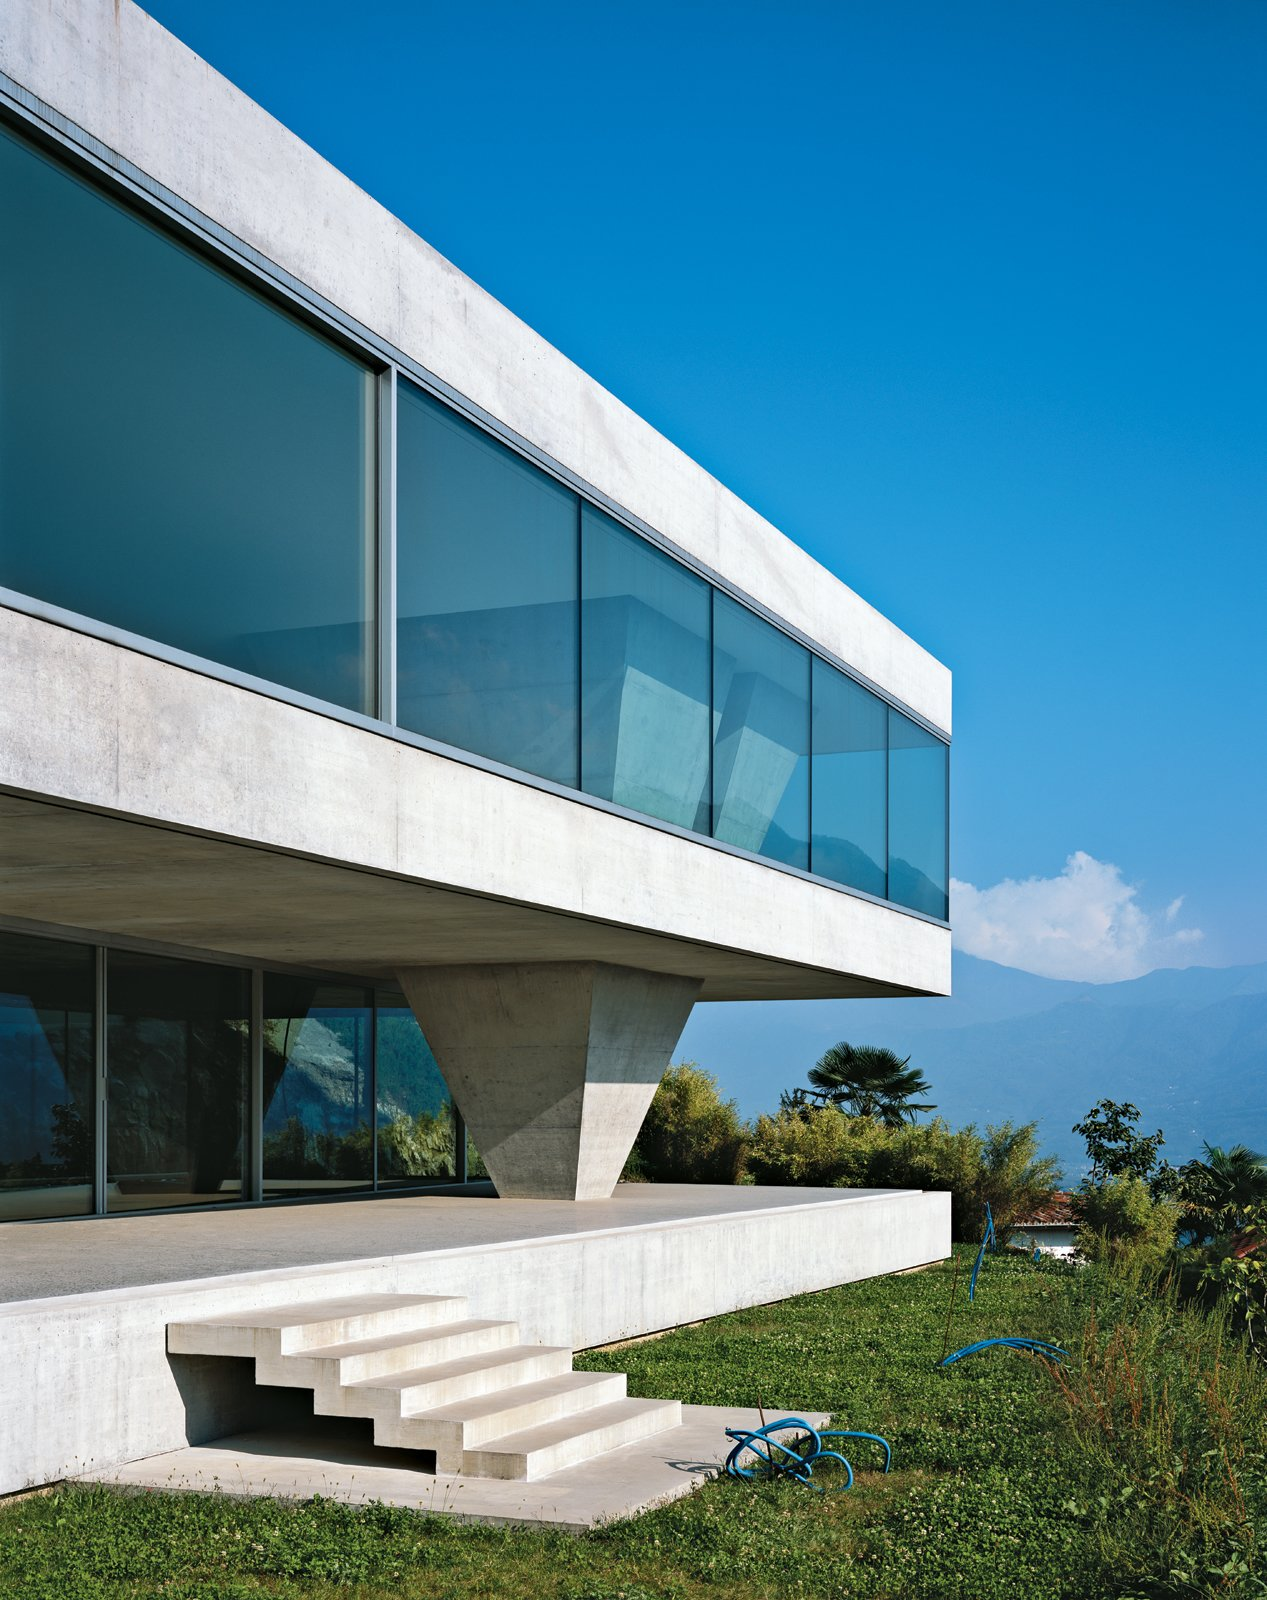 Exterior, Concrete Siding Material, Flat RoofLine, House Building Type, and Glass Siding Material Casa ai Pozzi makes a bold statement on the mountainous shores of Lake Maggiore. The windows that wrap around this concrete villa afford stunning views of the Swiss Alps, and the inverted pyramid that supports the structure subtly mirrors the surrounding mountain peaks.  Photo by: Hélène Binet  Concrete from A Concrete Double Villa in Switzerland